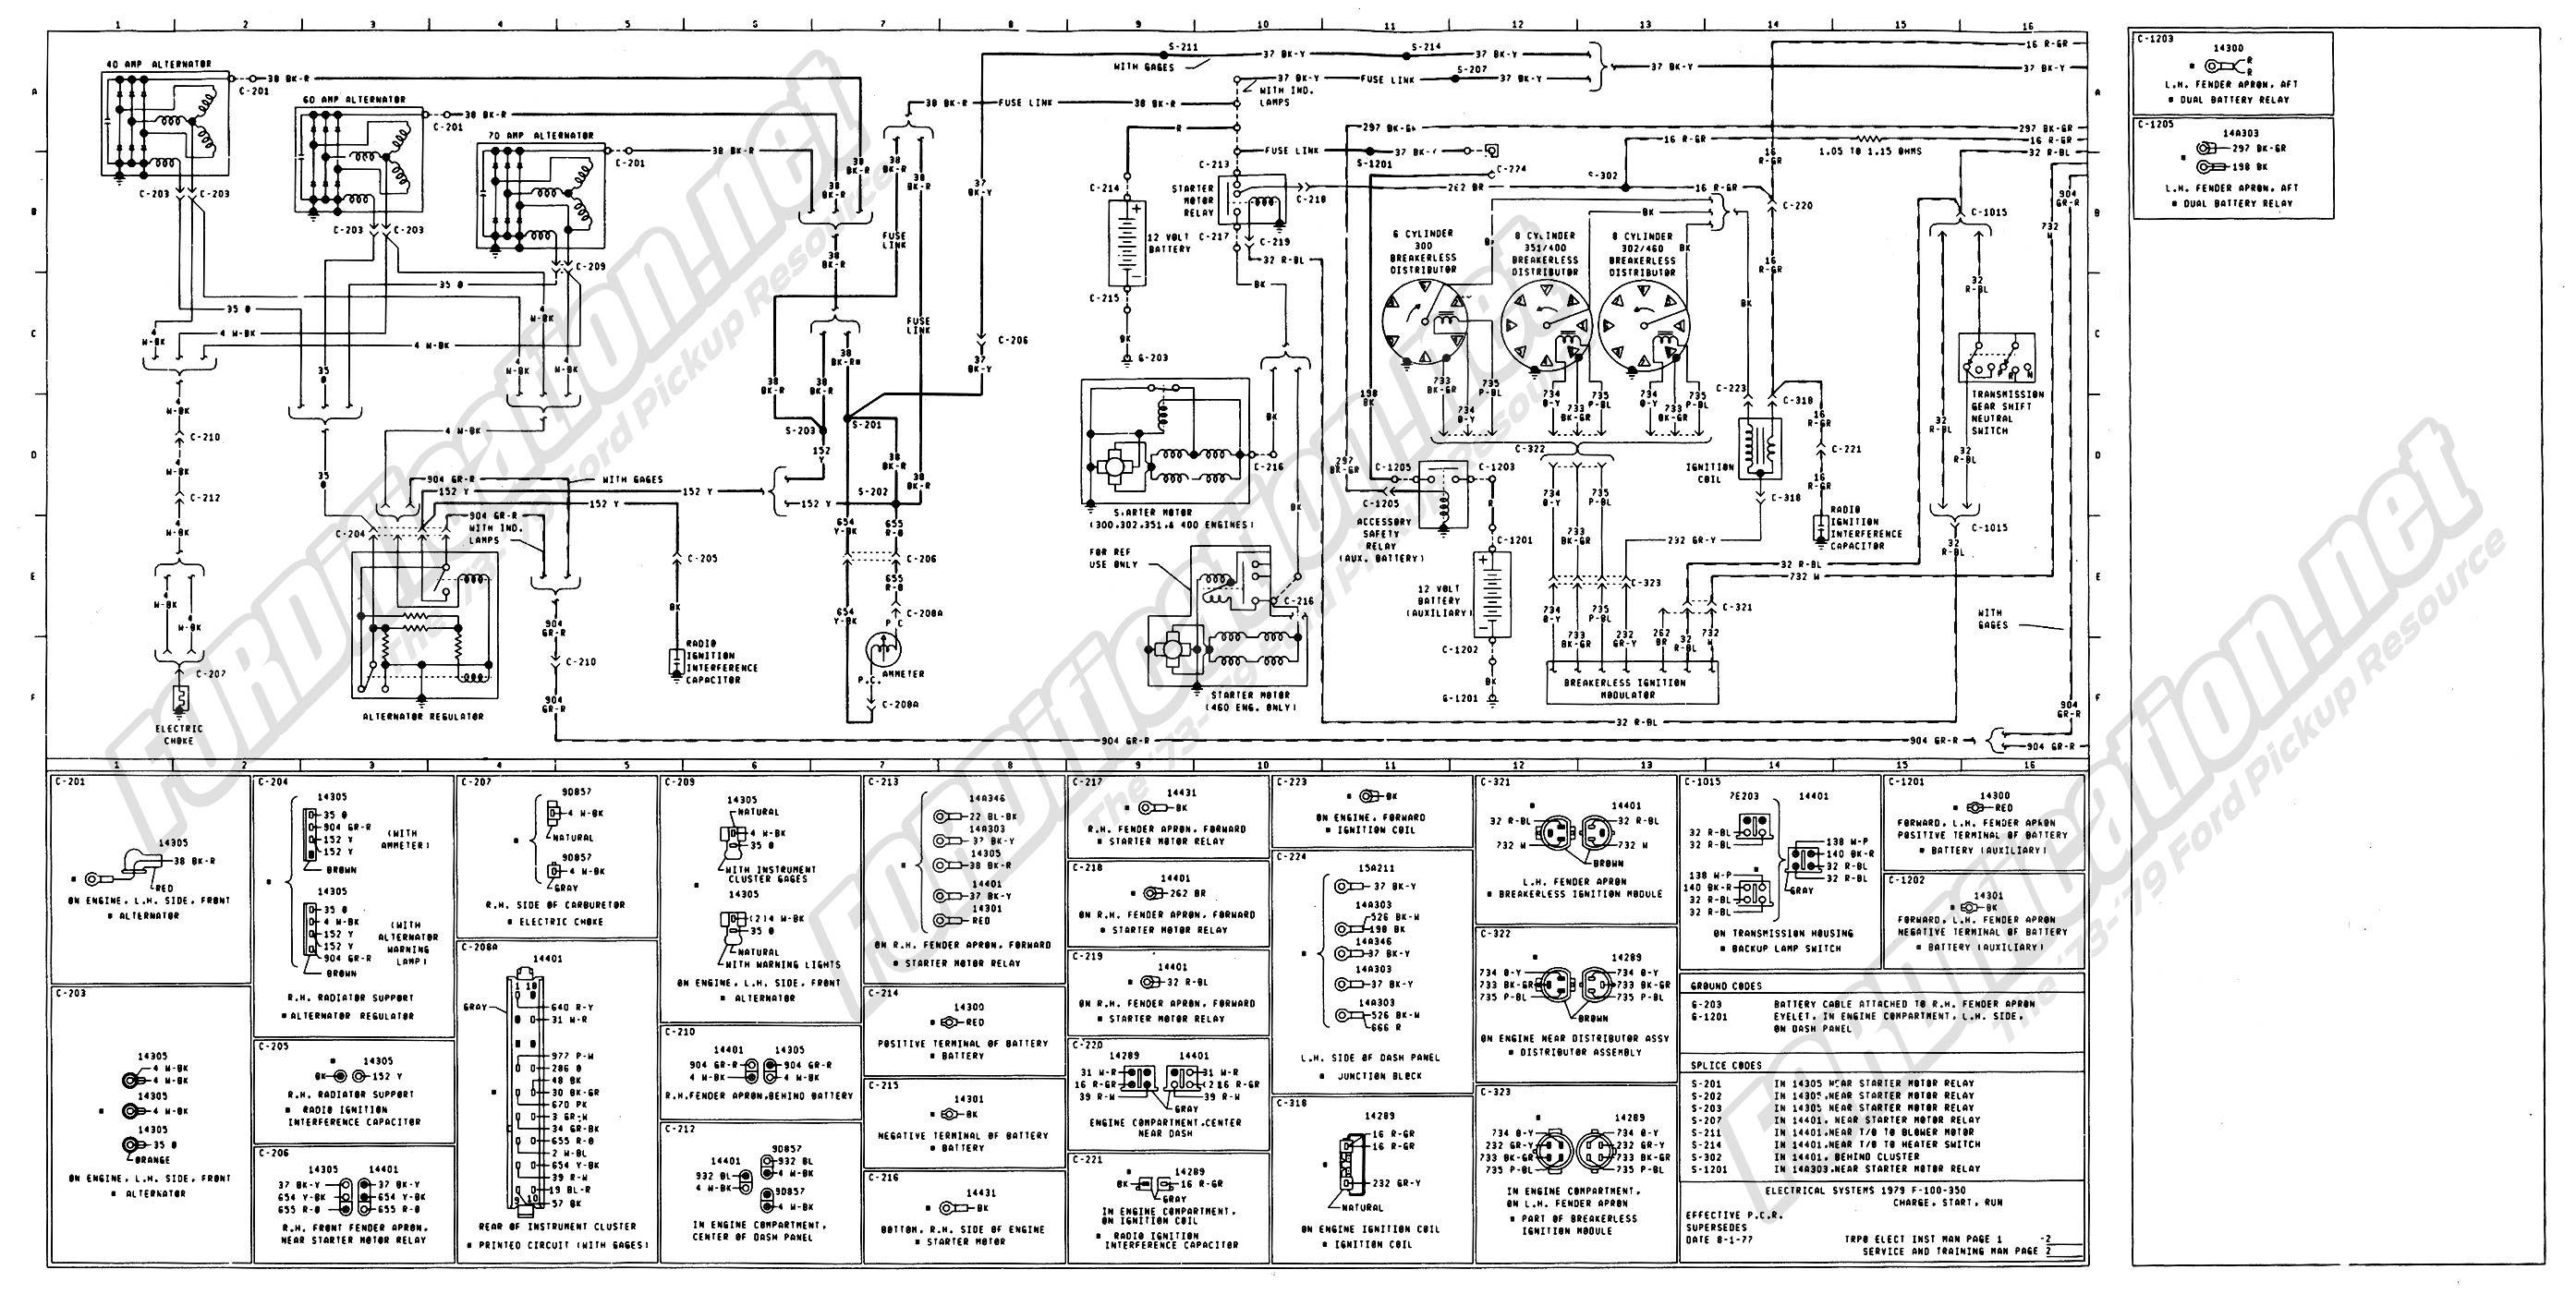 1973 1979 Ford Truck Wiring Diagrams Schematics 1987 Mustang Stereo Harness Color Code Schematic